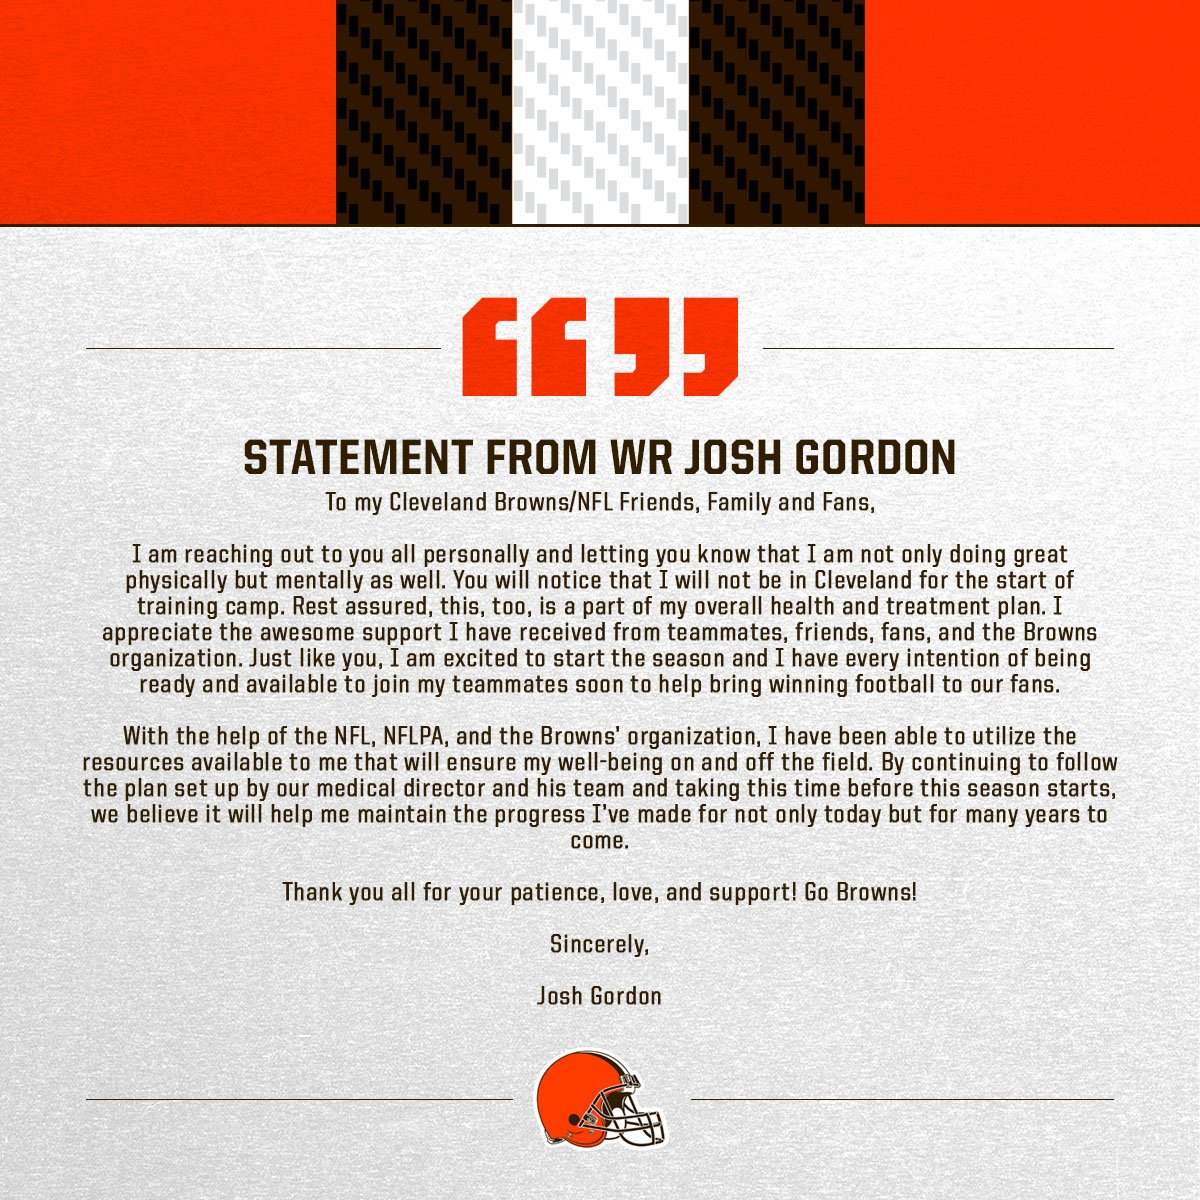 Statement from WR Josh Gordon and GM John Dorsey  �� » https://t.co/lXw21mrPxc https://t.co/RbJF0BQ46B